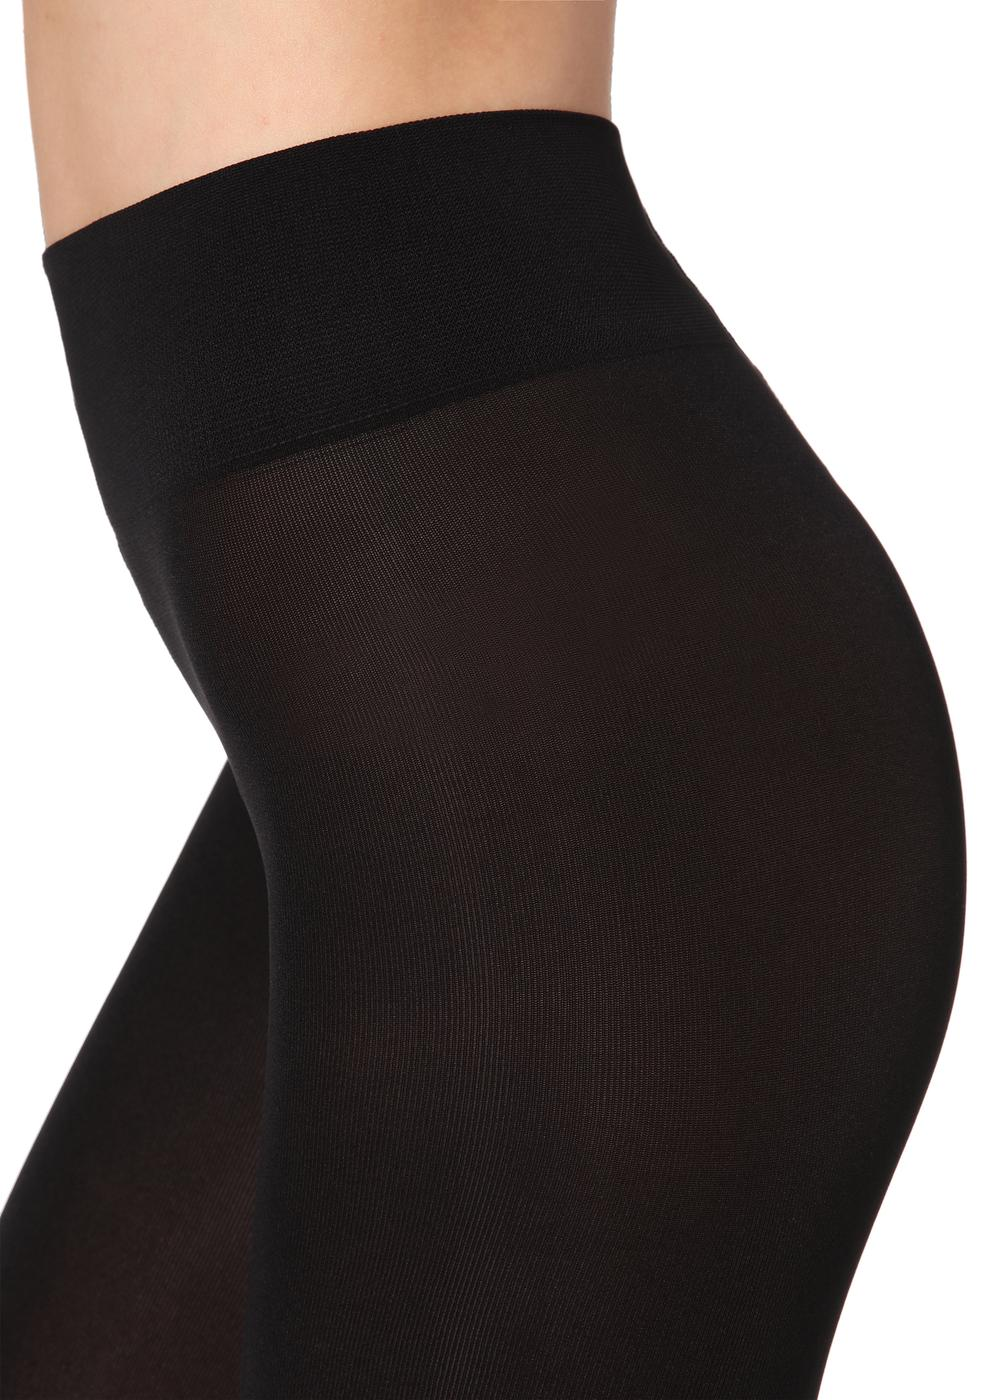 Collants 100 deniers ultra-confortables au toucher doux